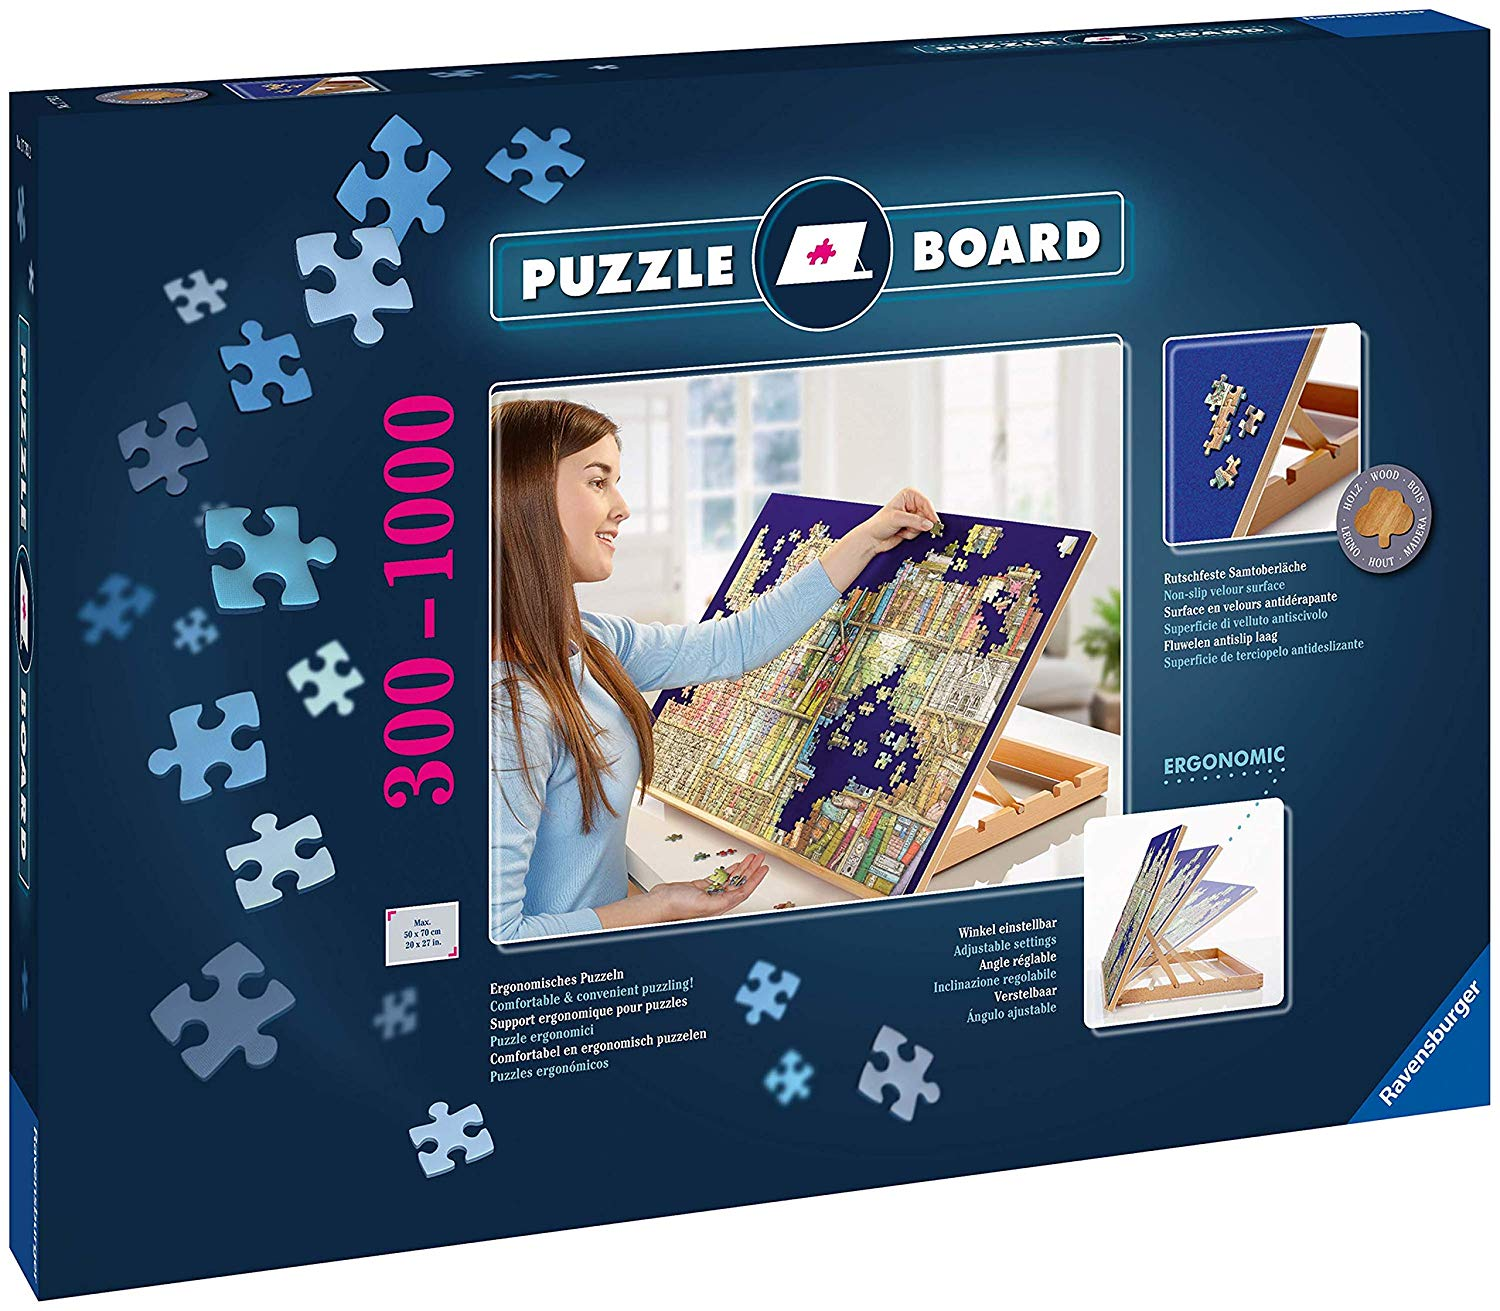 http://data.my-puzzle.fr/ravensburger.5/puzzle-board-puzzle-1000-pieces.75125-2.fs.jpg